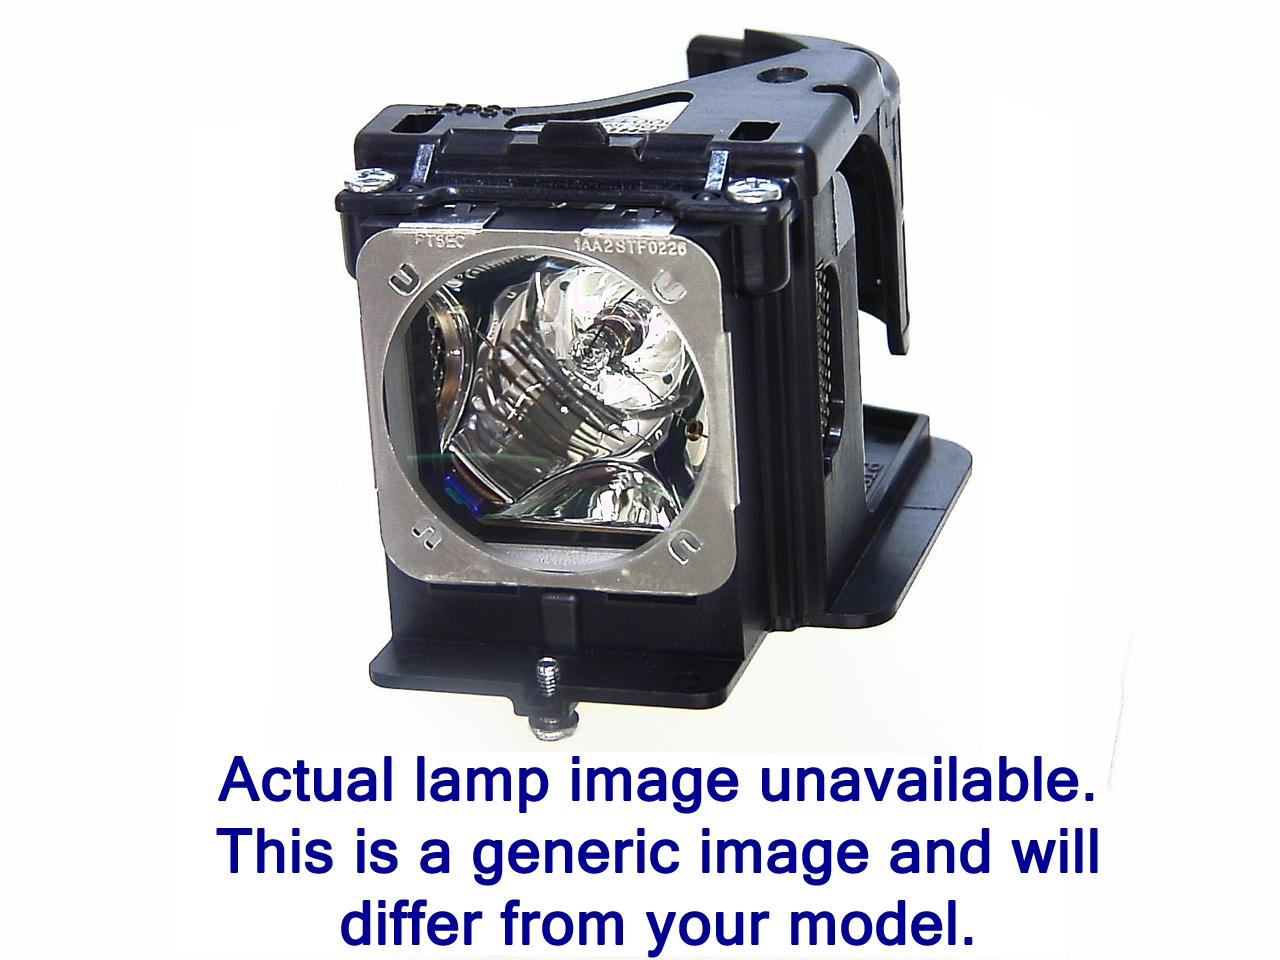 Diamond Lámpara For NOBO S25 Proyector.